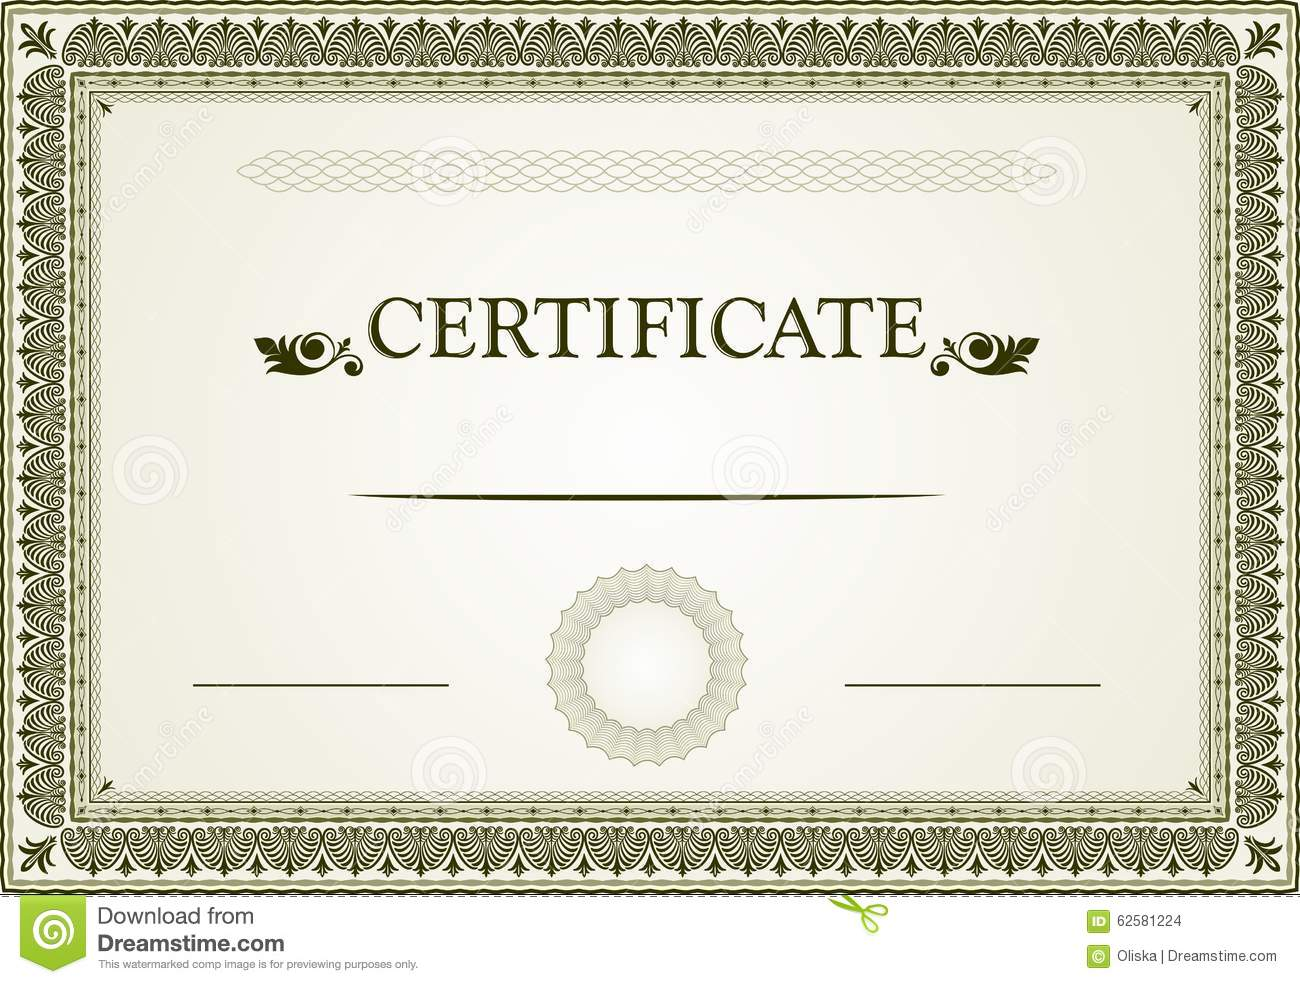 Certificate Design Stock Vector - Image: 62581224